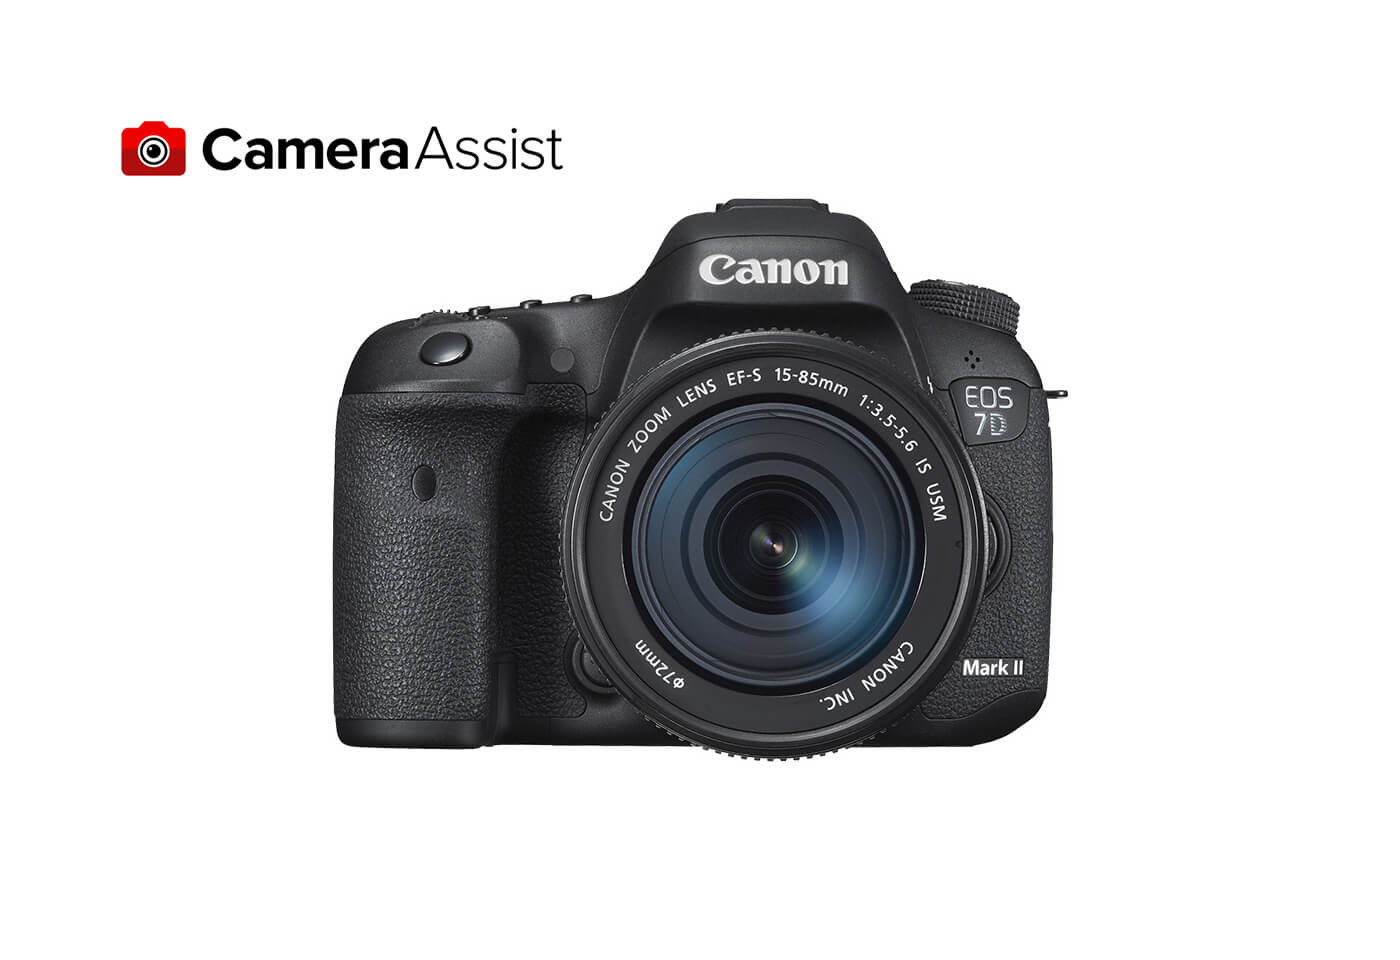 EOS 7D Mark II Support